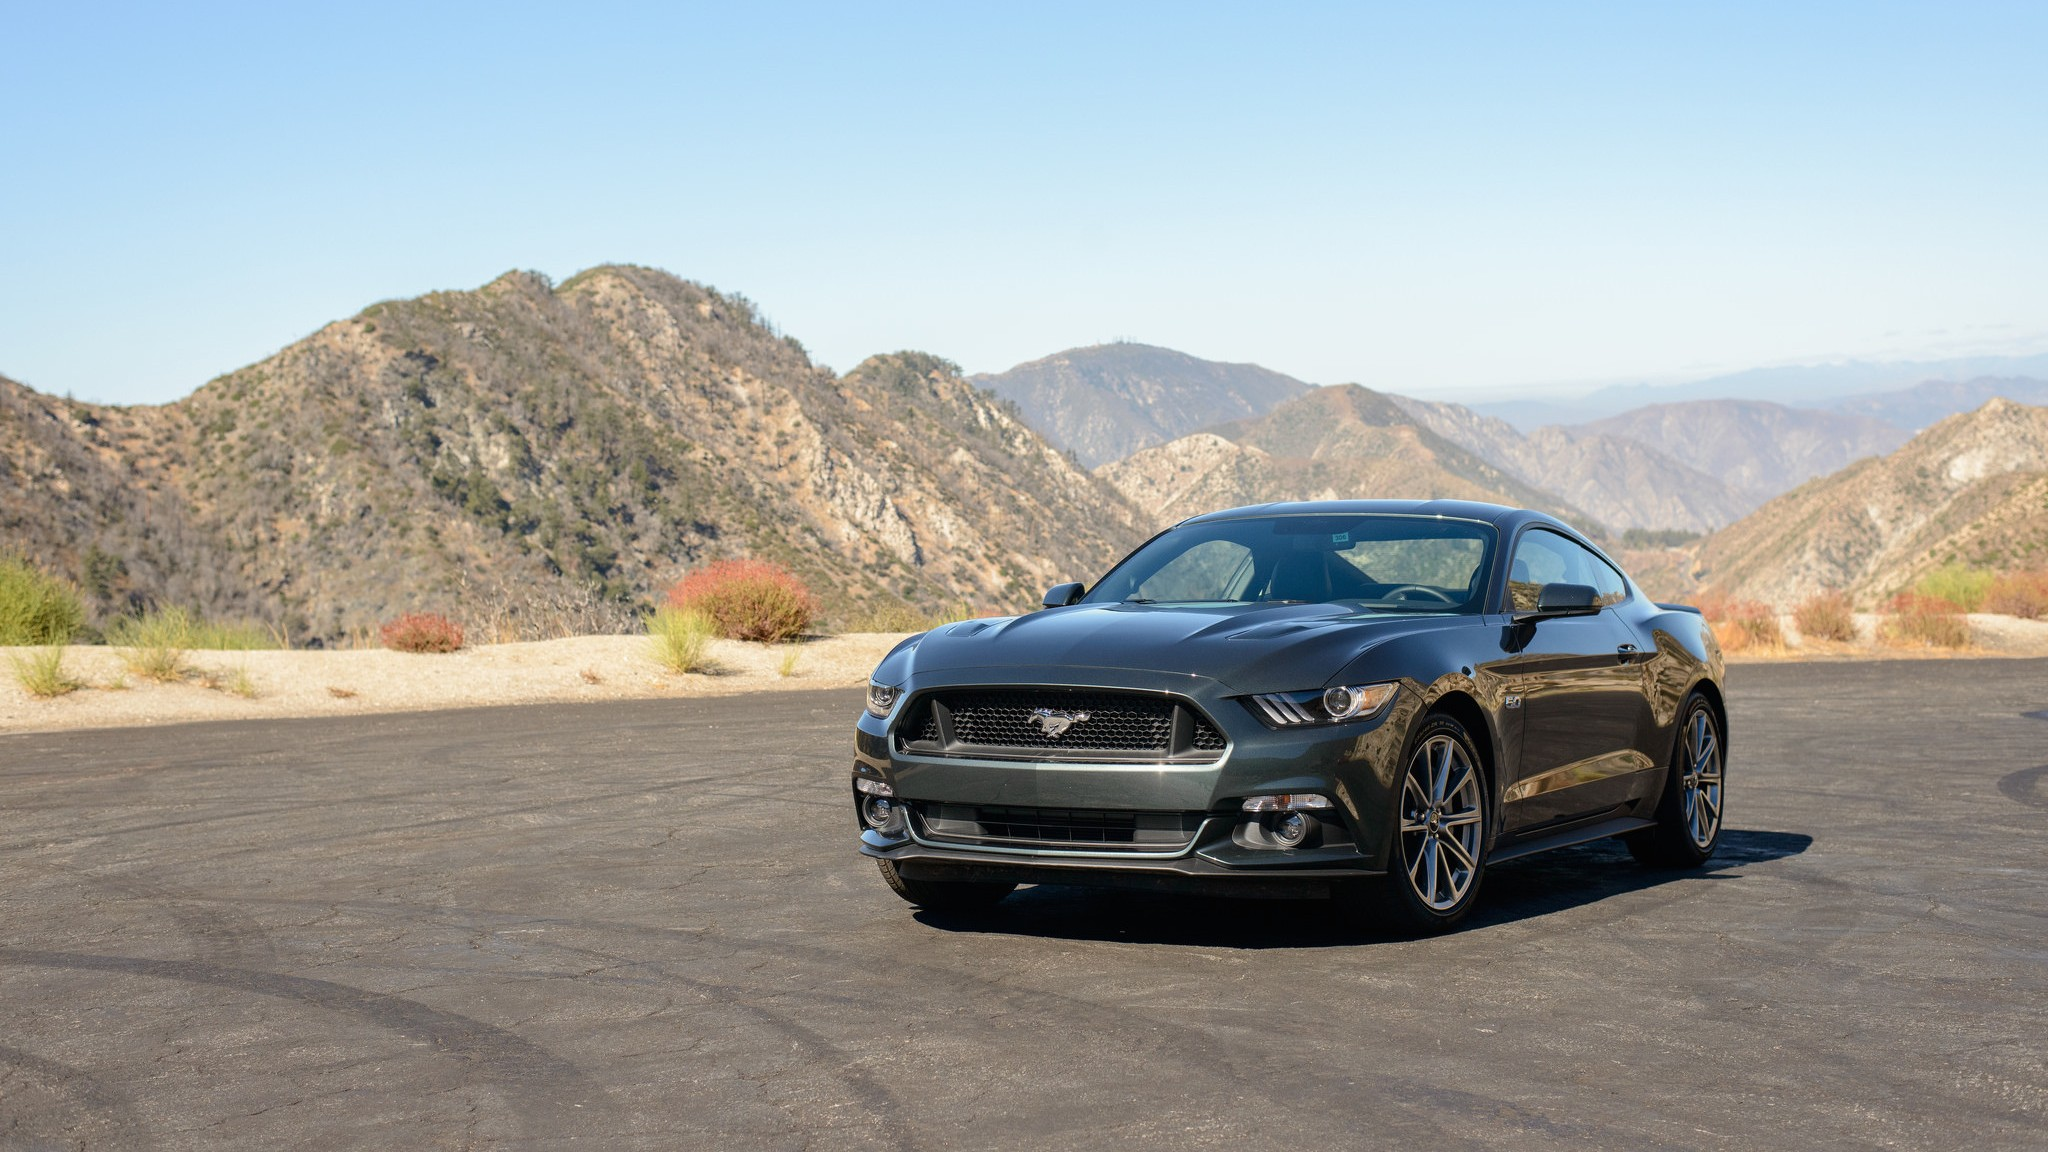 I Drove the New Mustang Because Hauling Ass Rules